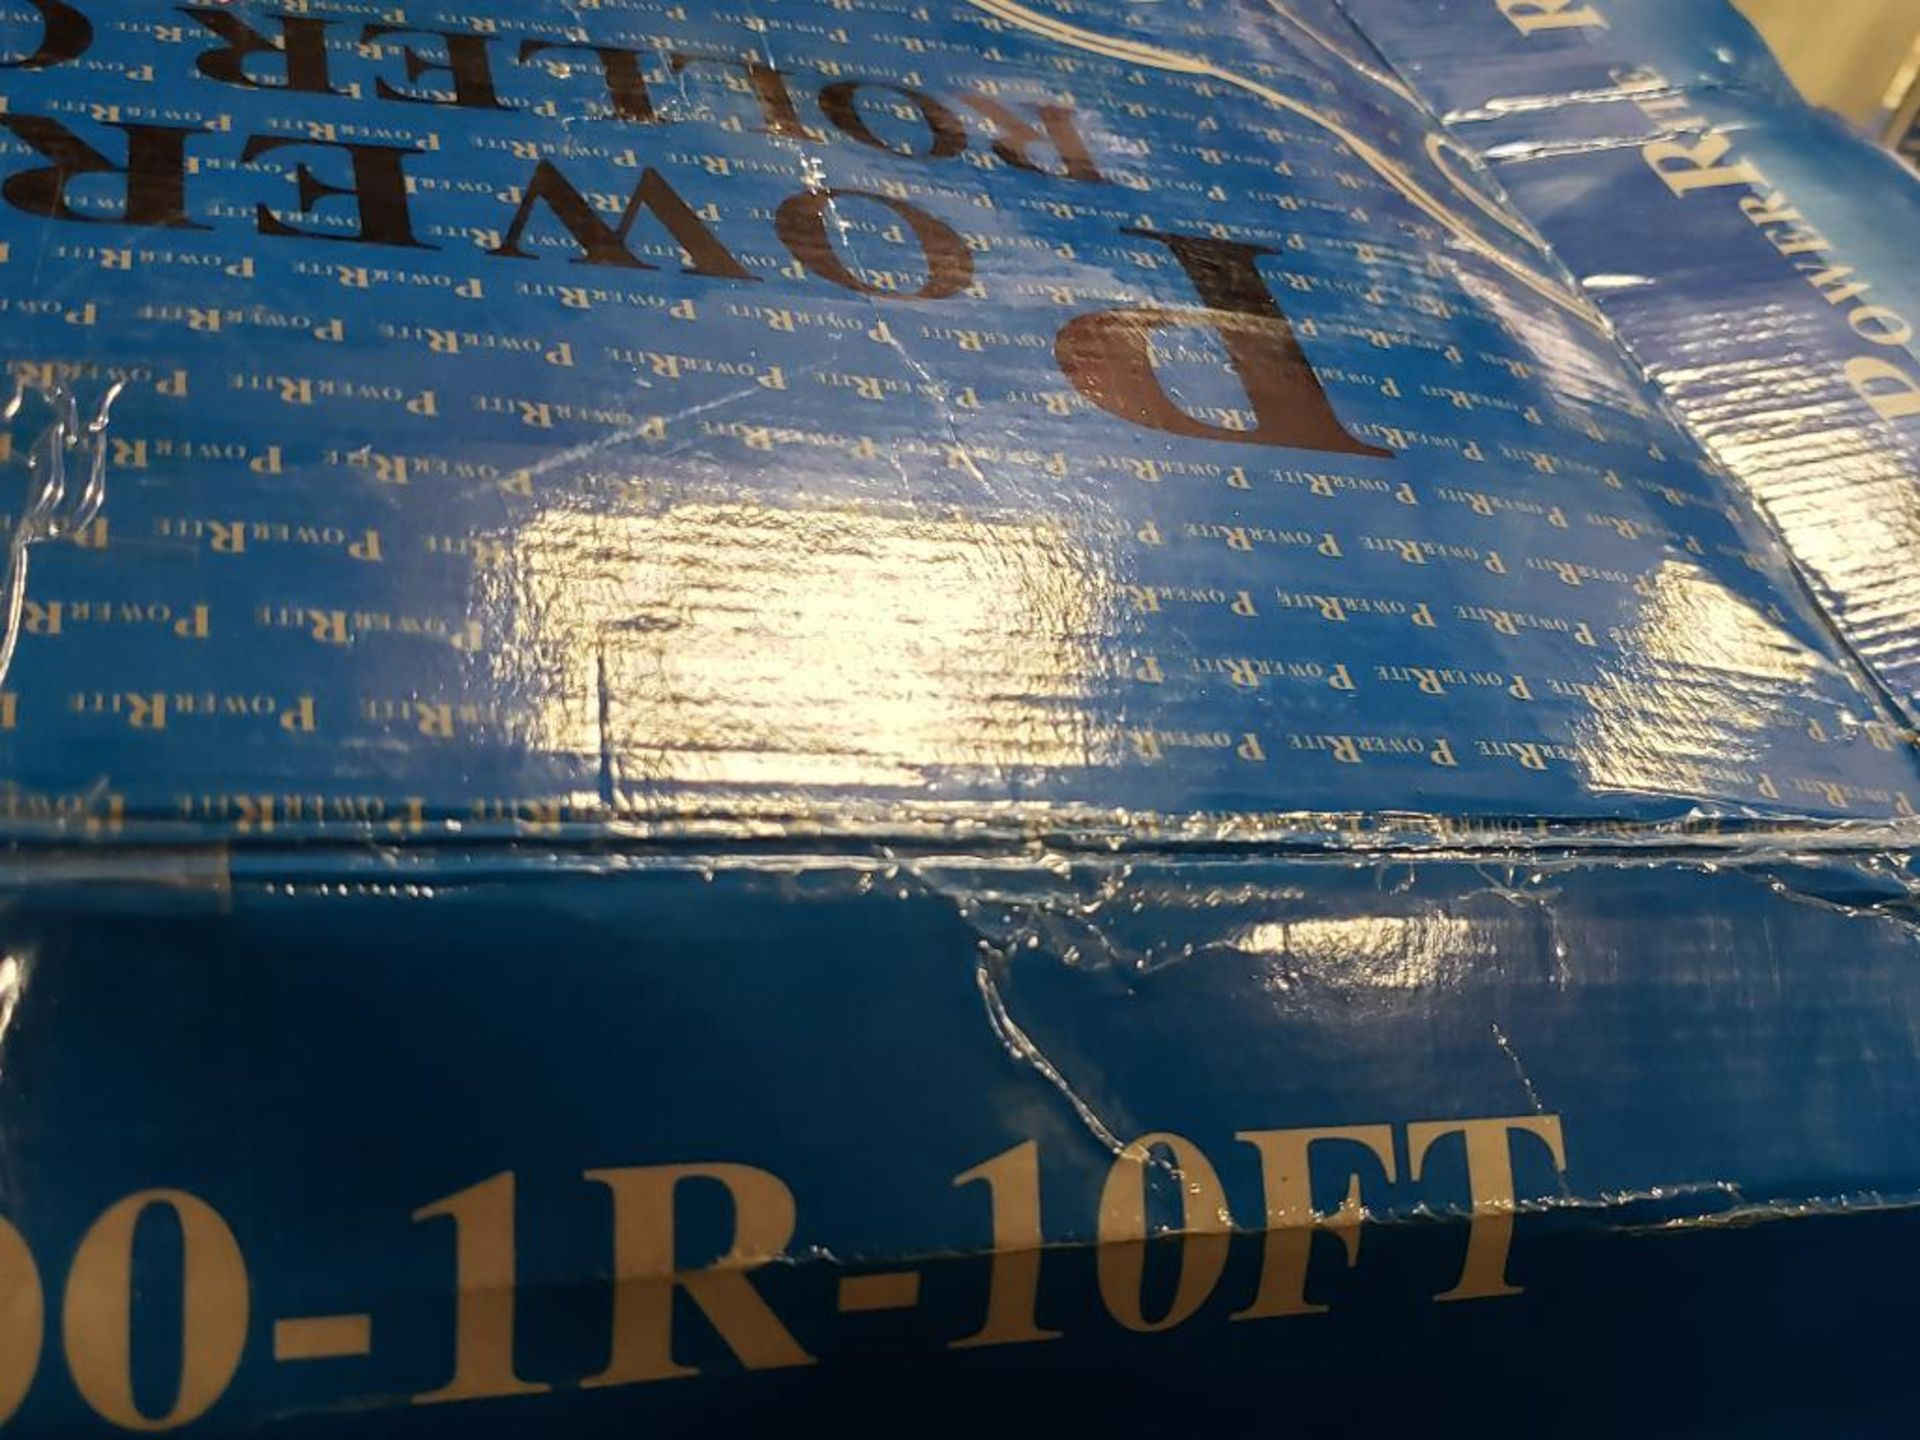 Power Rite ANSI 200-1R-10FT Roller Chain. New in Box. - Image 3 of 4